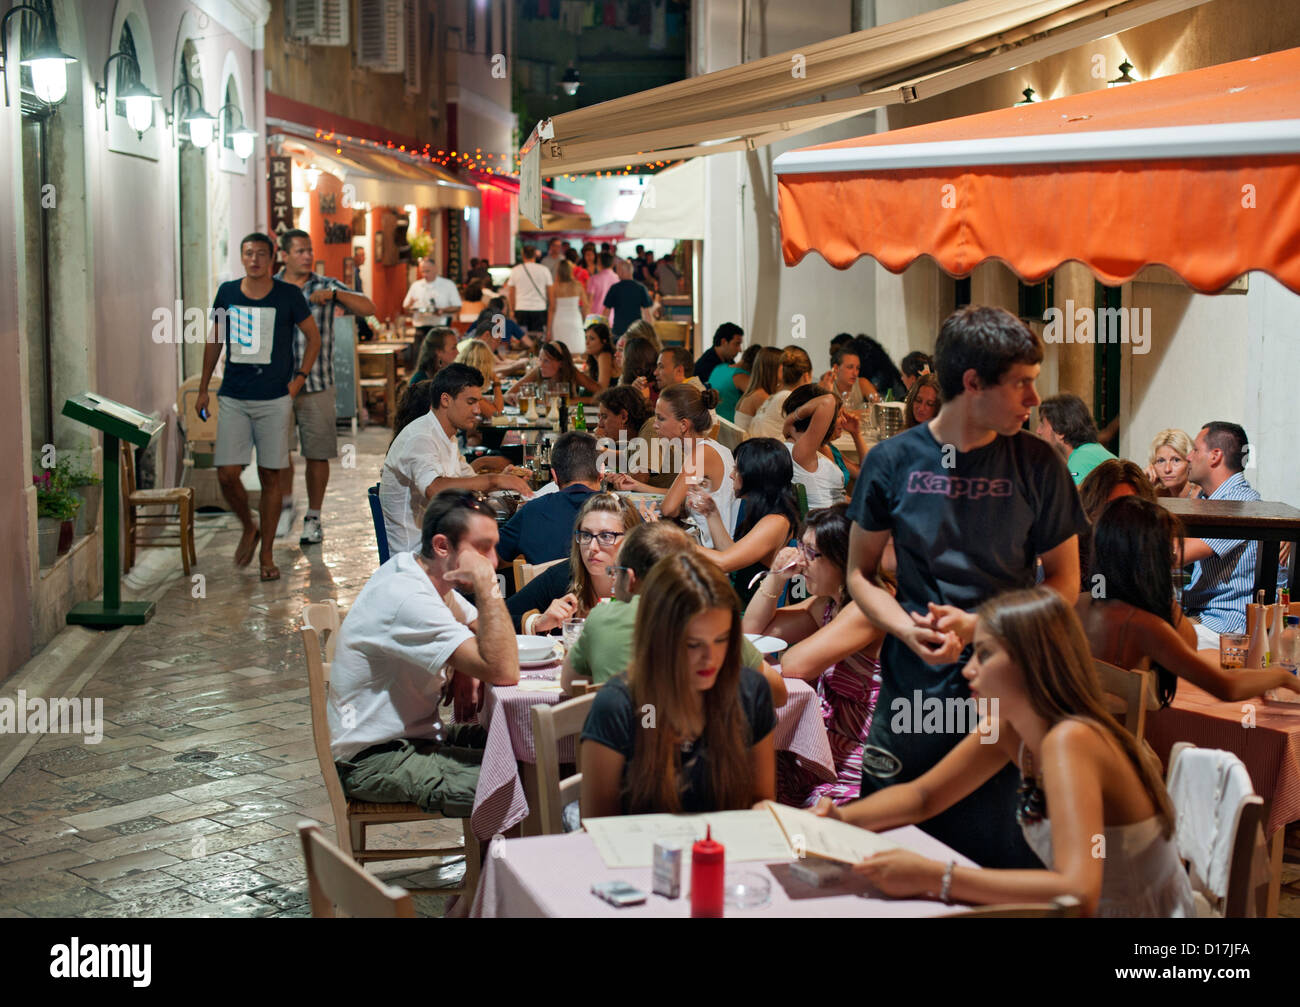 Crowded cafes in the old town in Zadar on the Adriatic coast of Croatia. - Stock Image